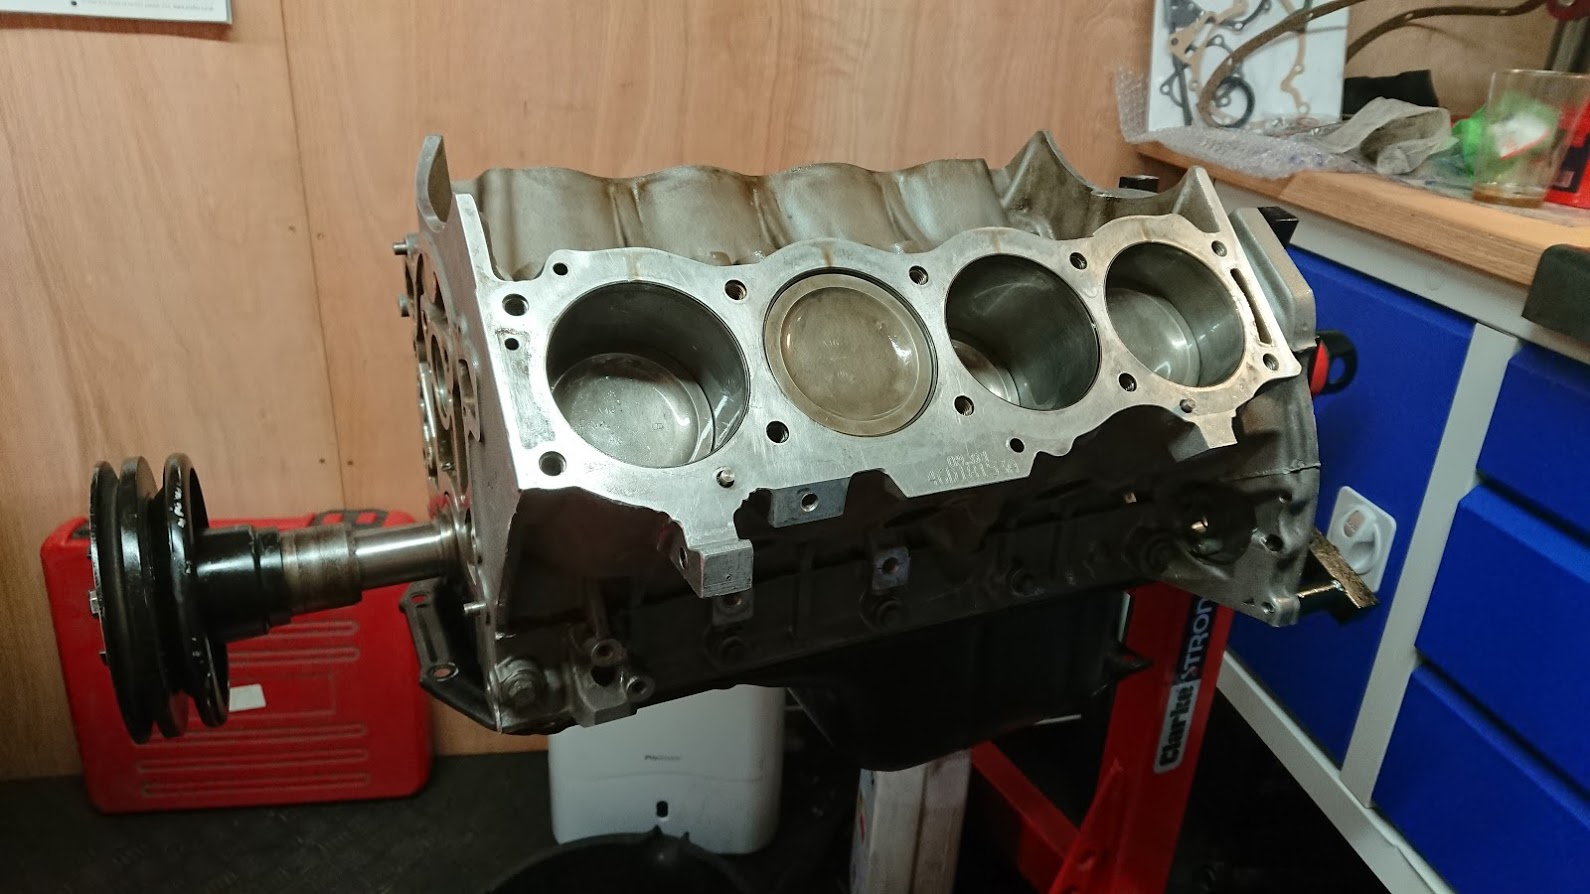 V8 engine build part 2 – (more) new main bearings, crank and piston fitting